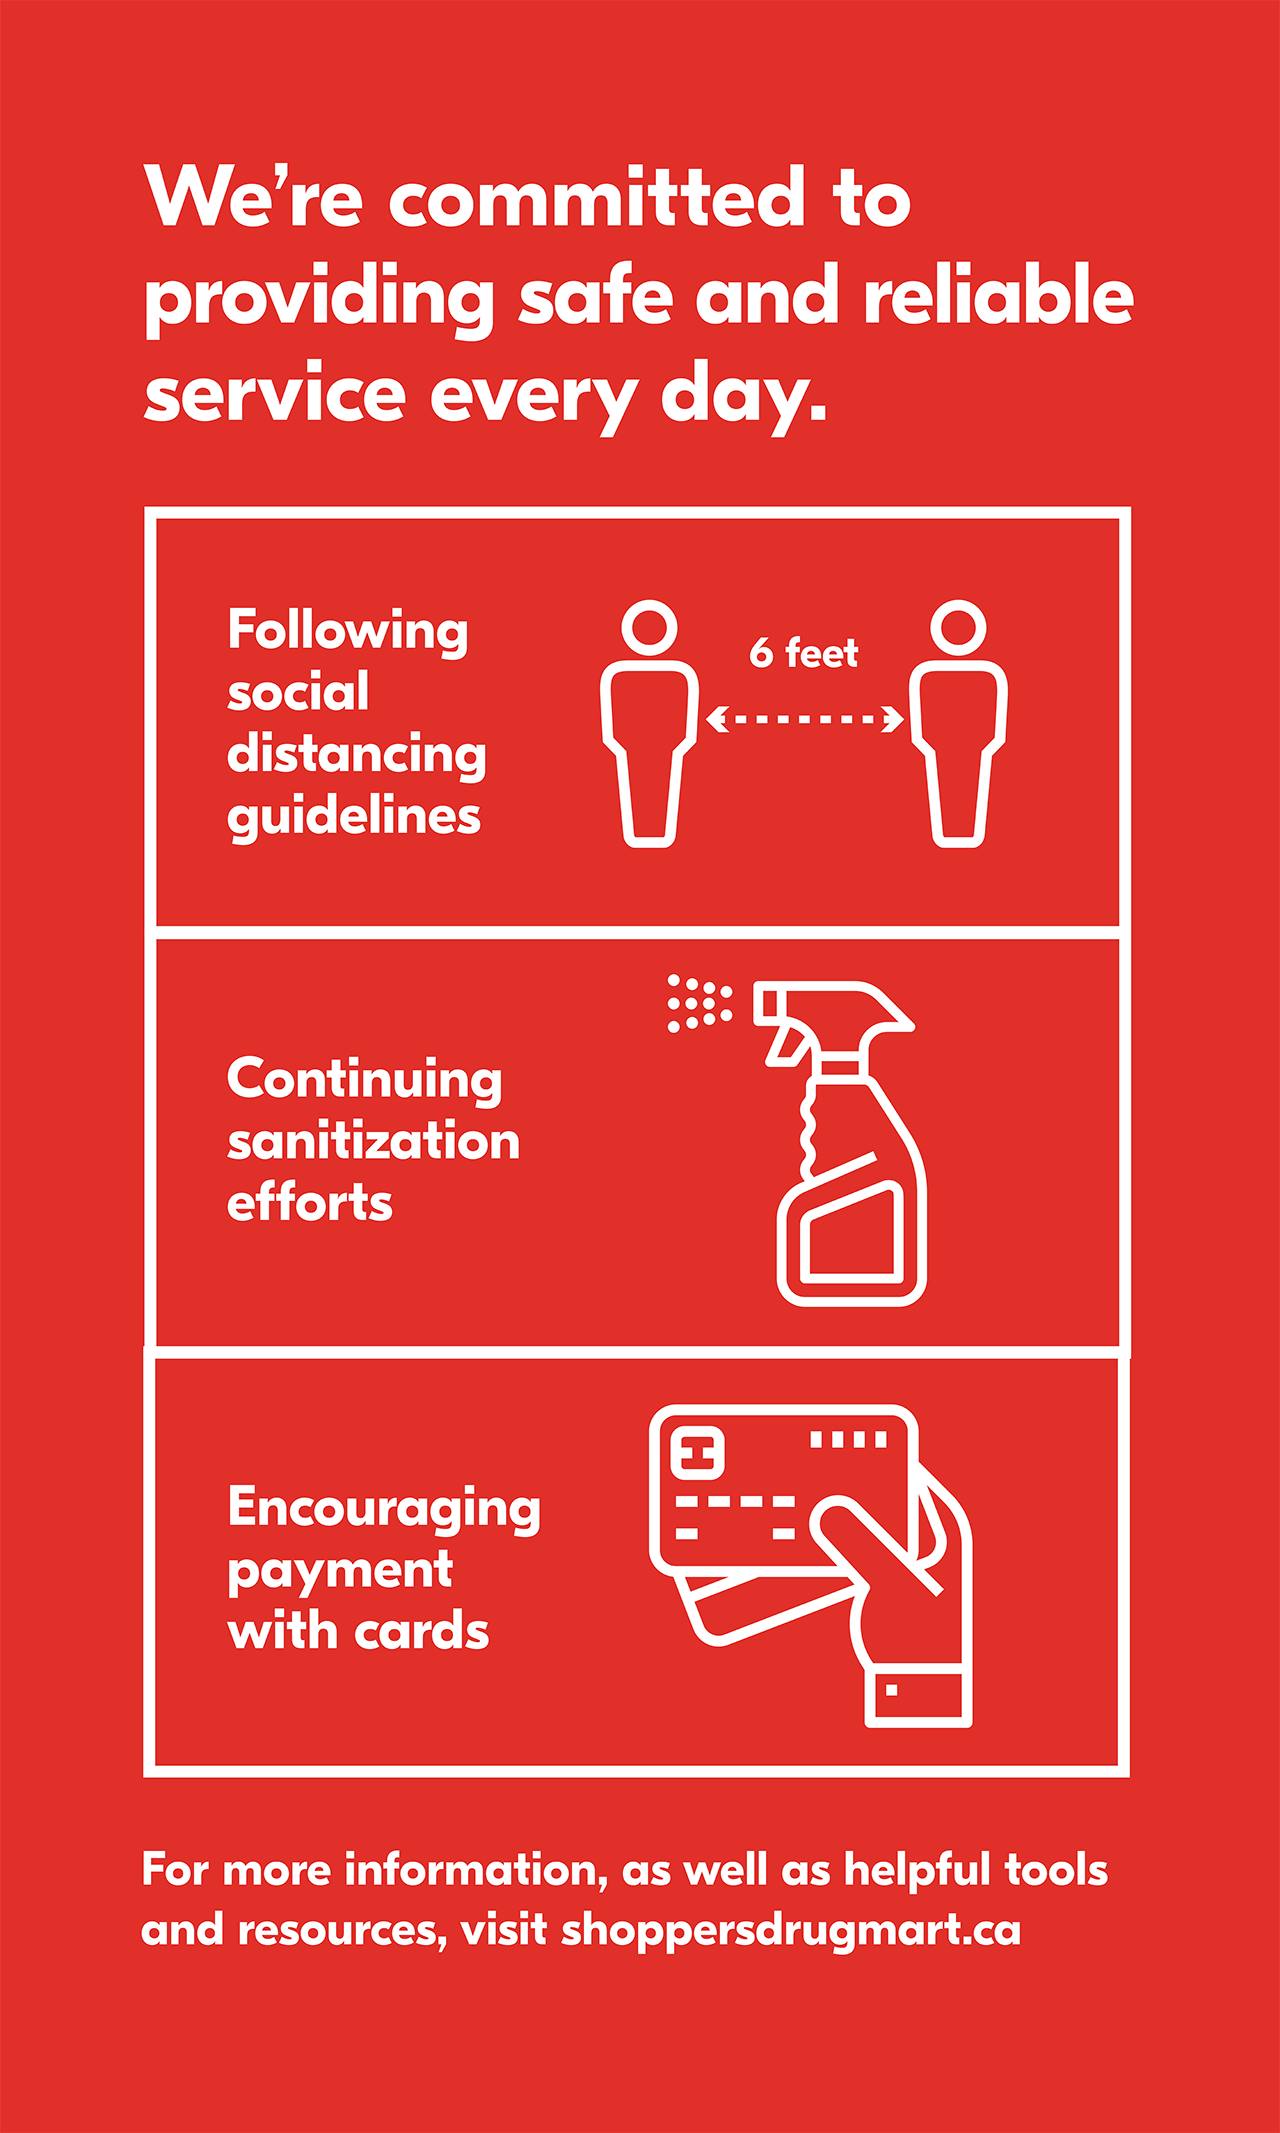 We're committed to providing safe and reliable service every day. Following 6 feet social distancing guidelines, Continuing sanitization efforts, Encouraging payment with cards. For more information, as well as helpful tools and resources, visit shoppersdrugmart.ca